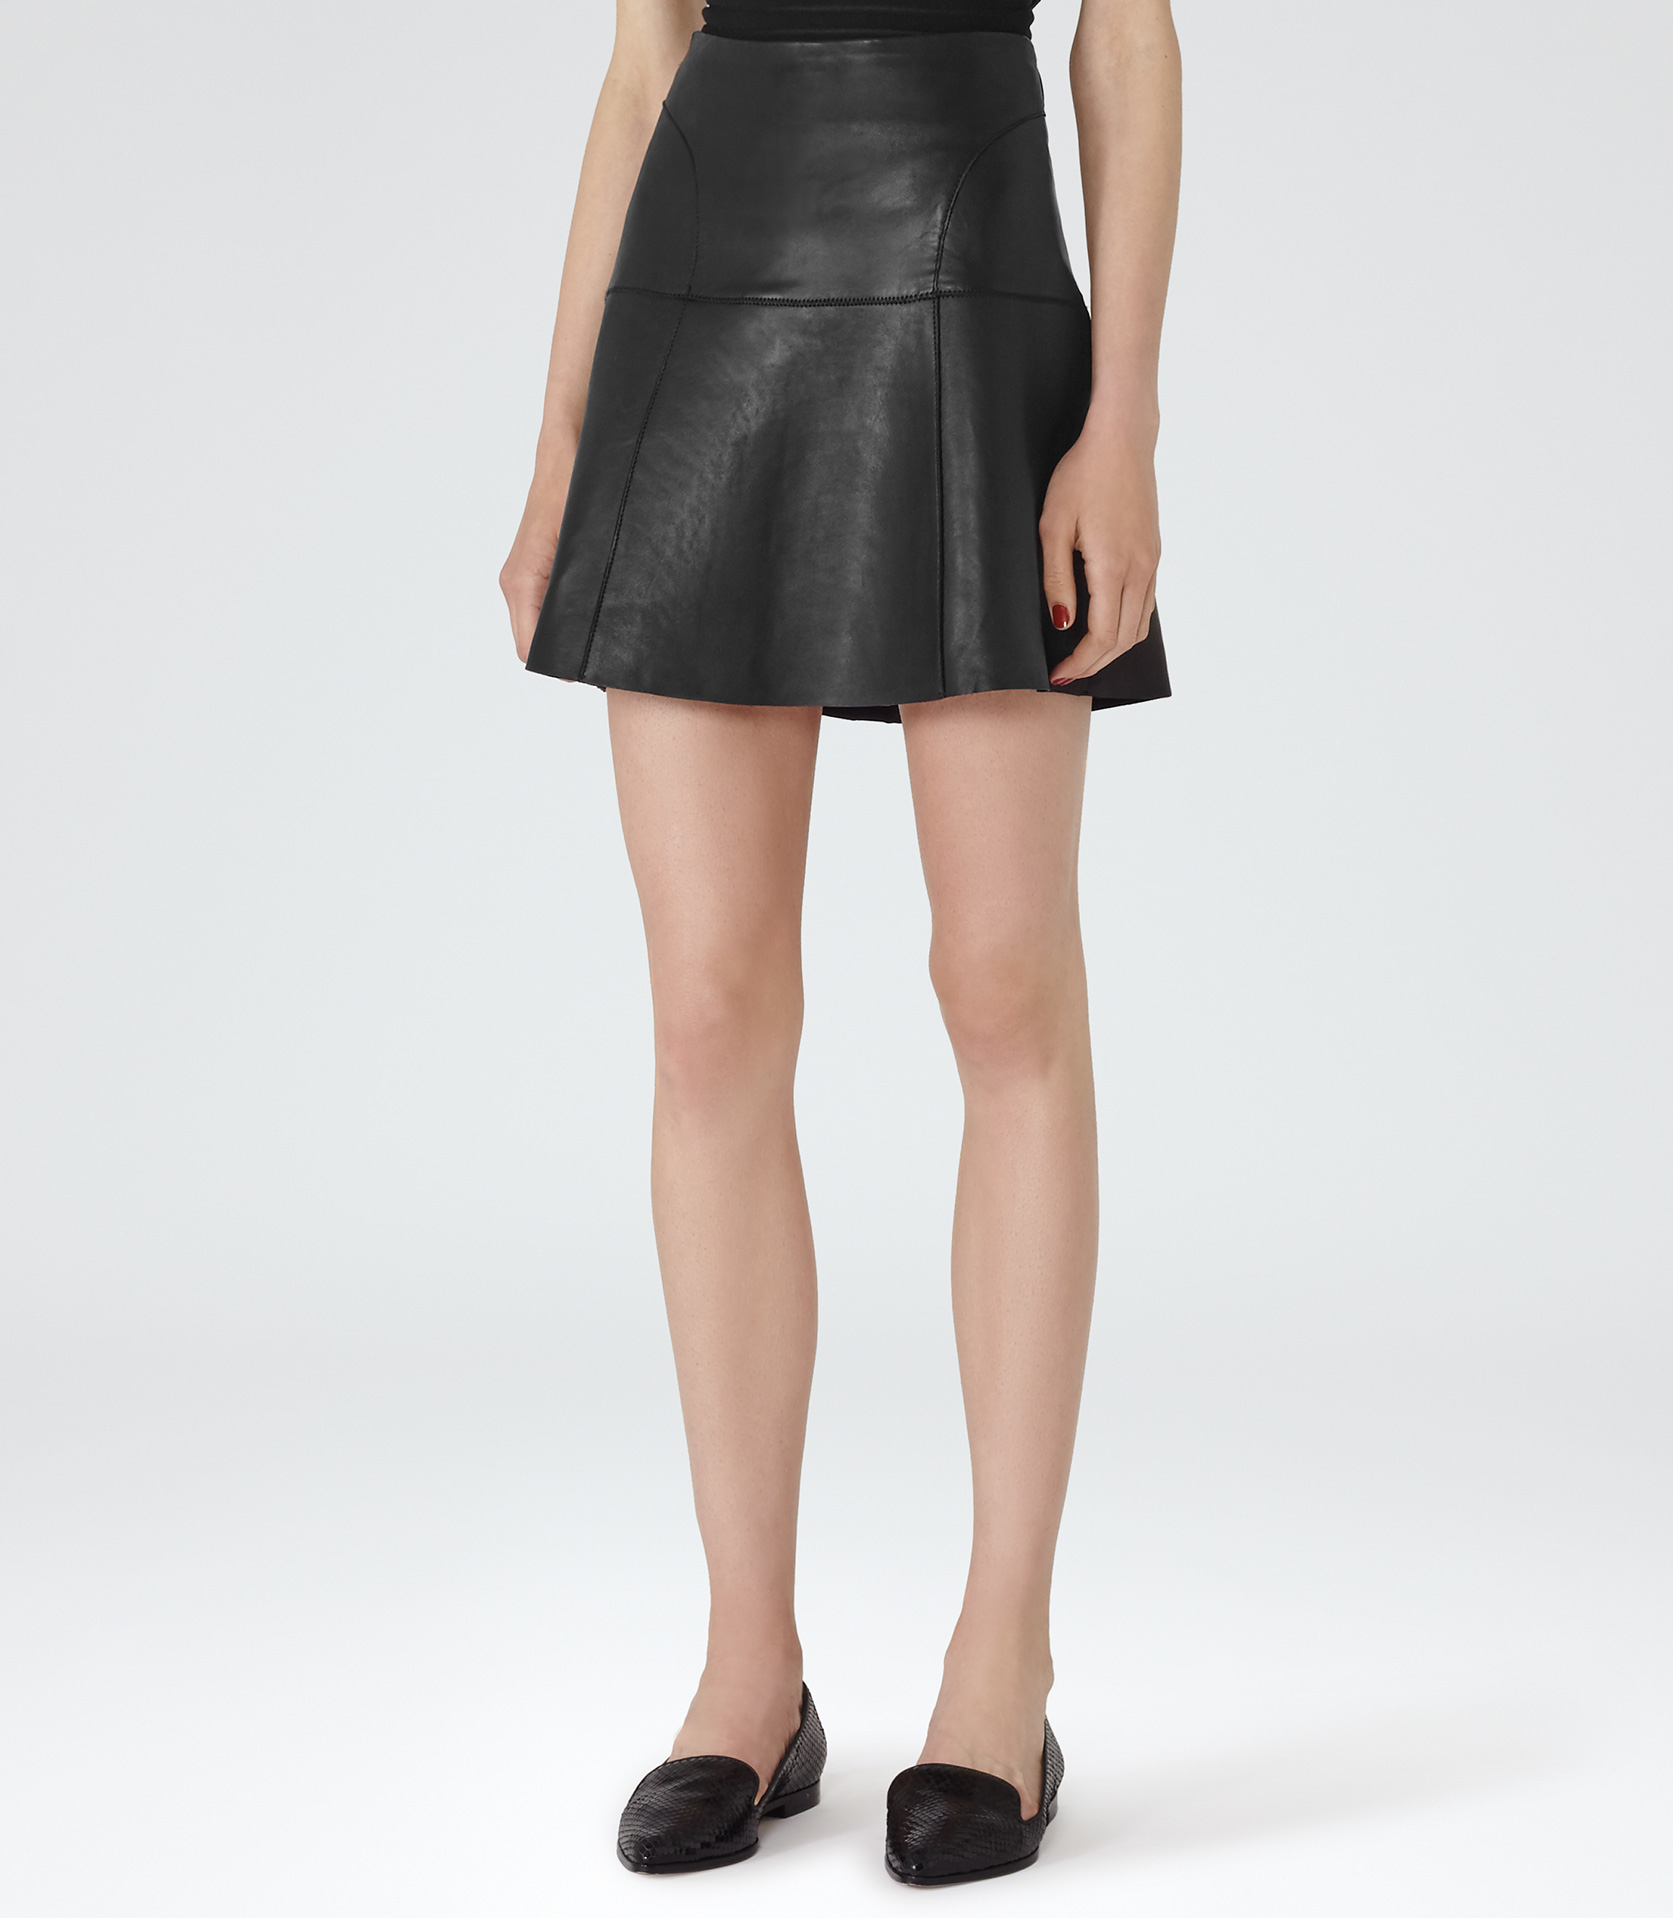 Reiss Cheya Leather A-line Mini Skirt in Black | Lyst